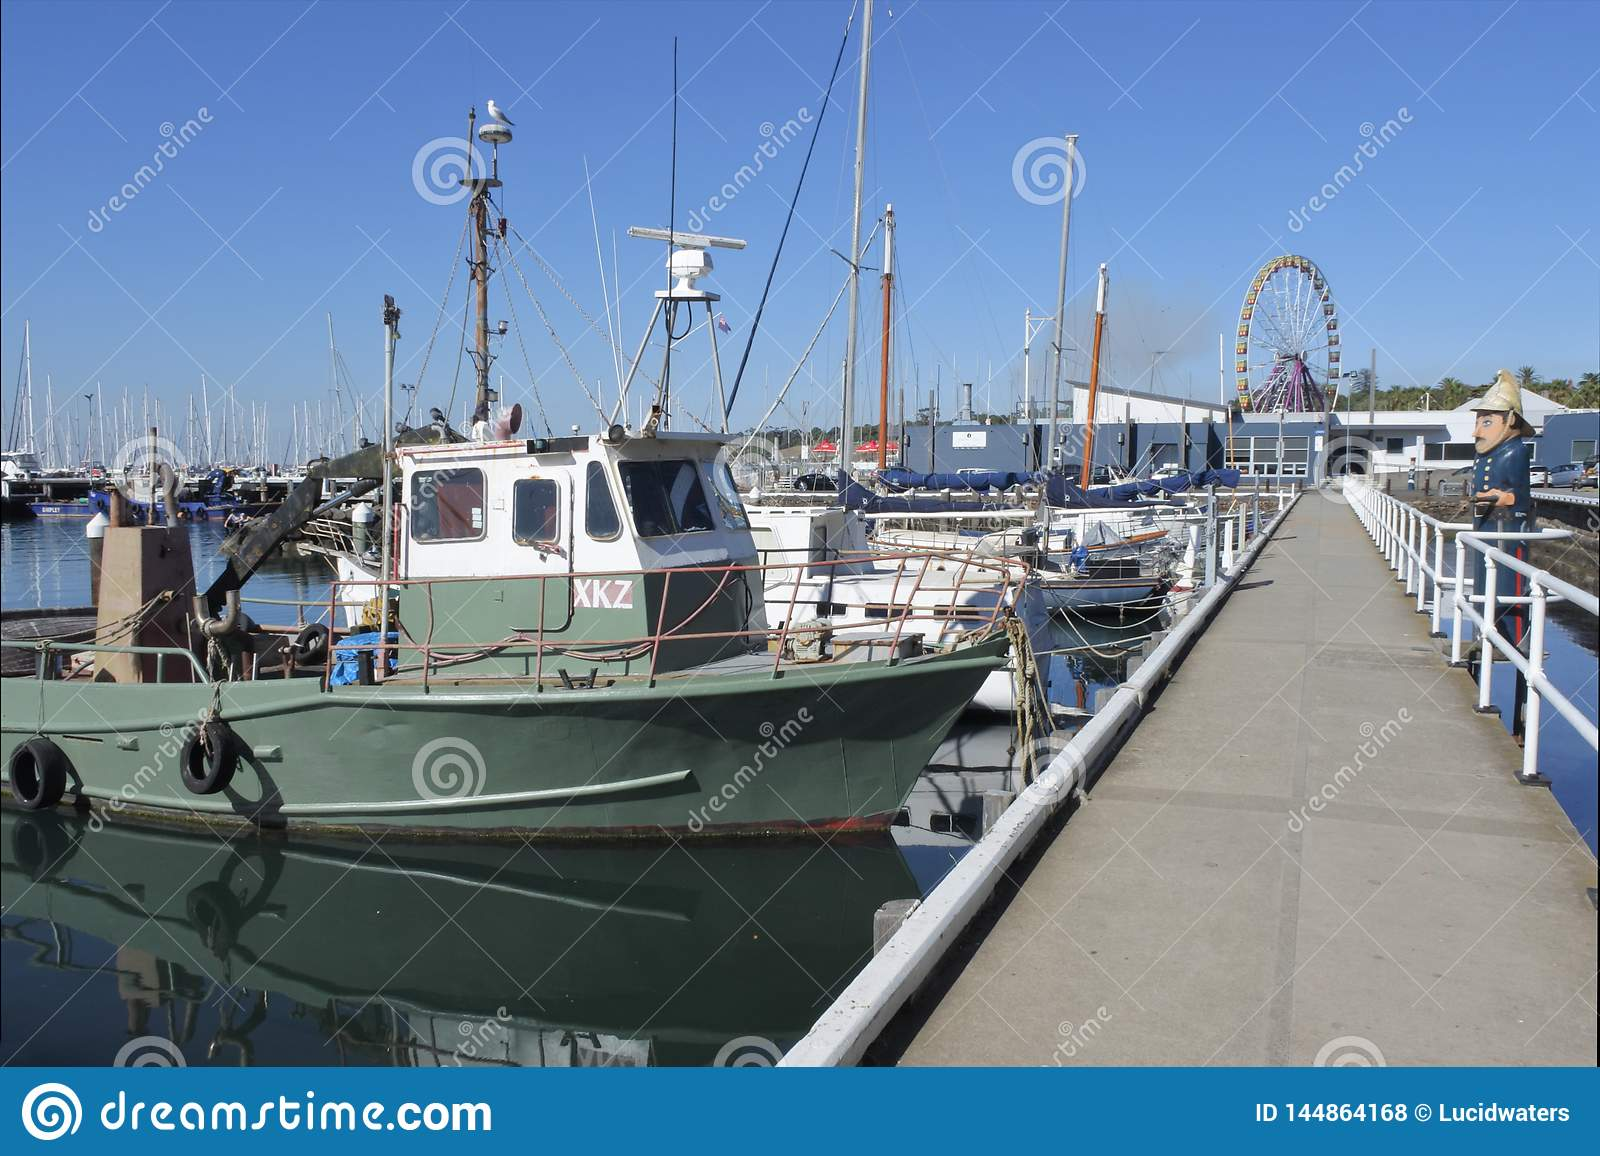 Boats moored on Geelong waterfront Melbourne Victoria Australia